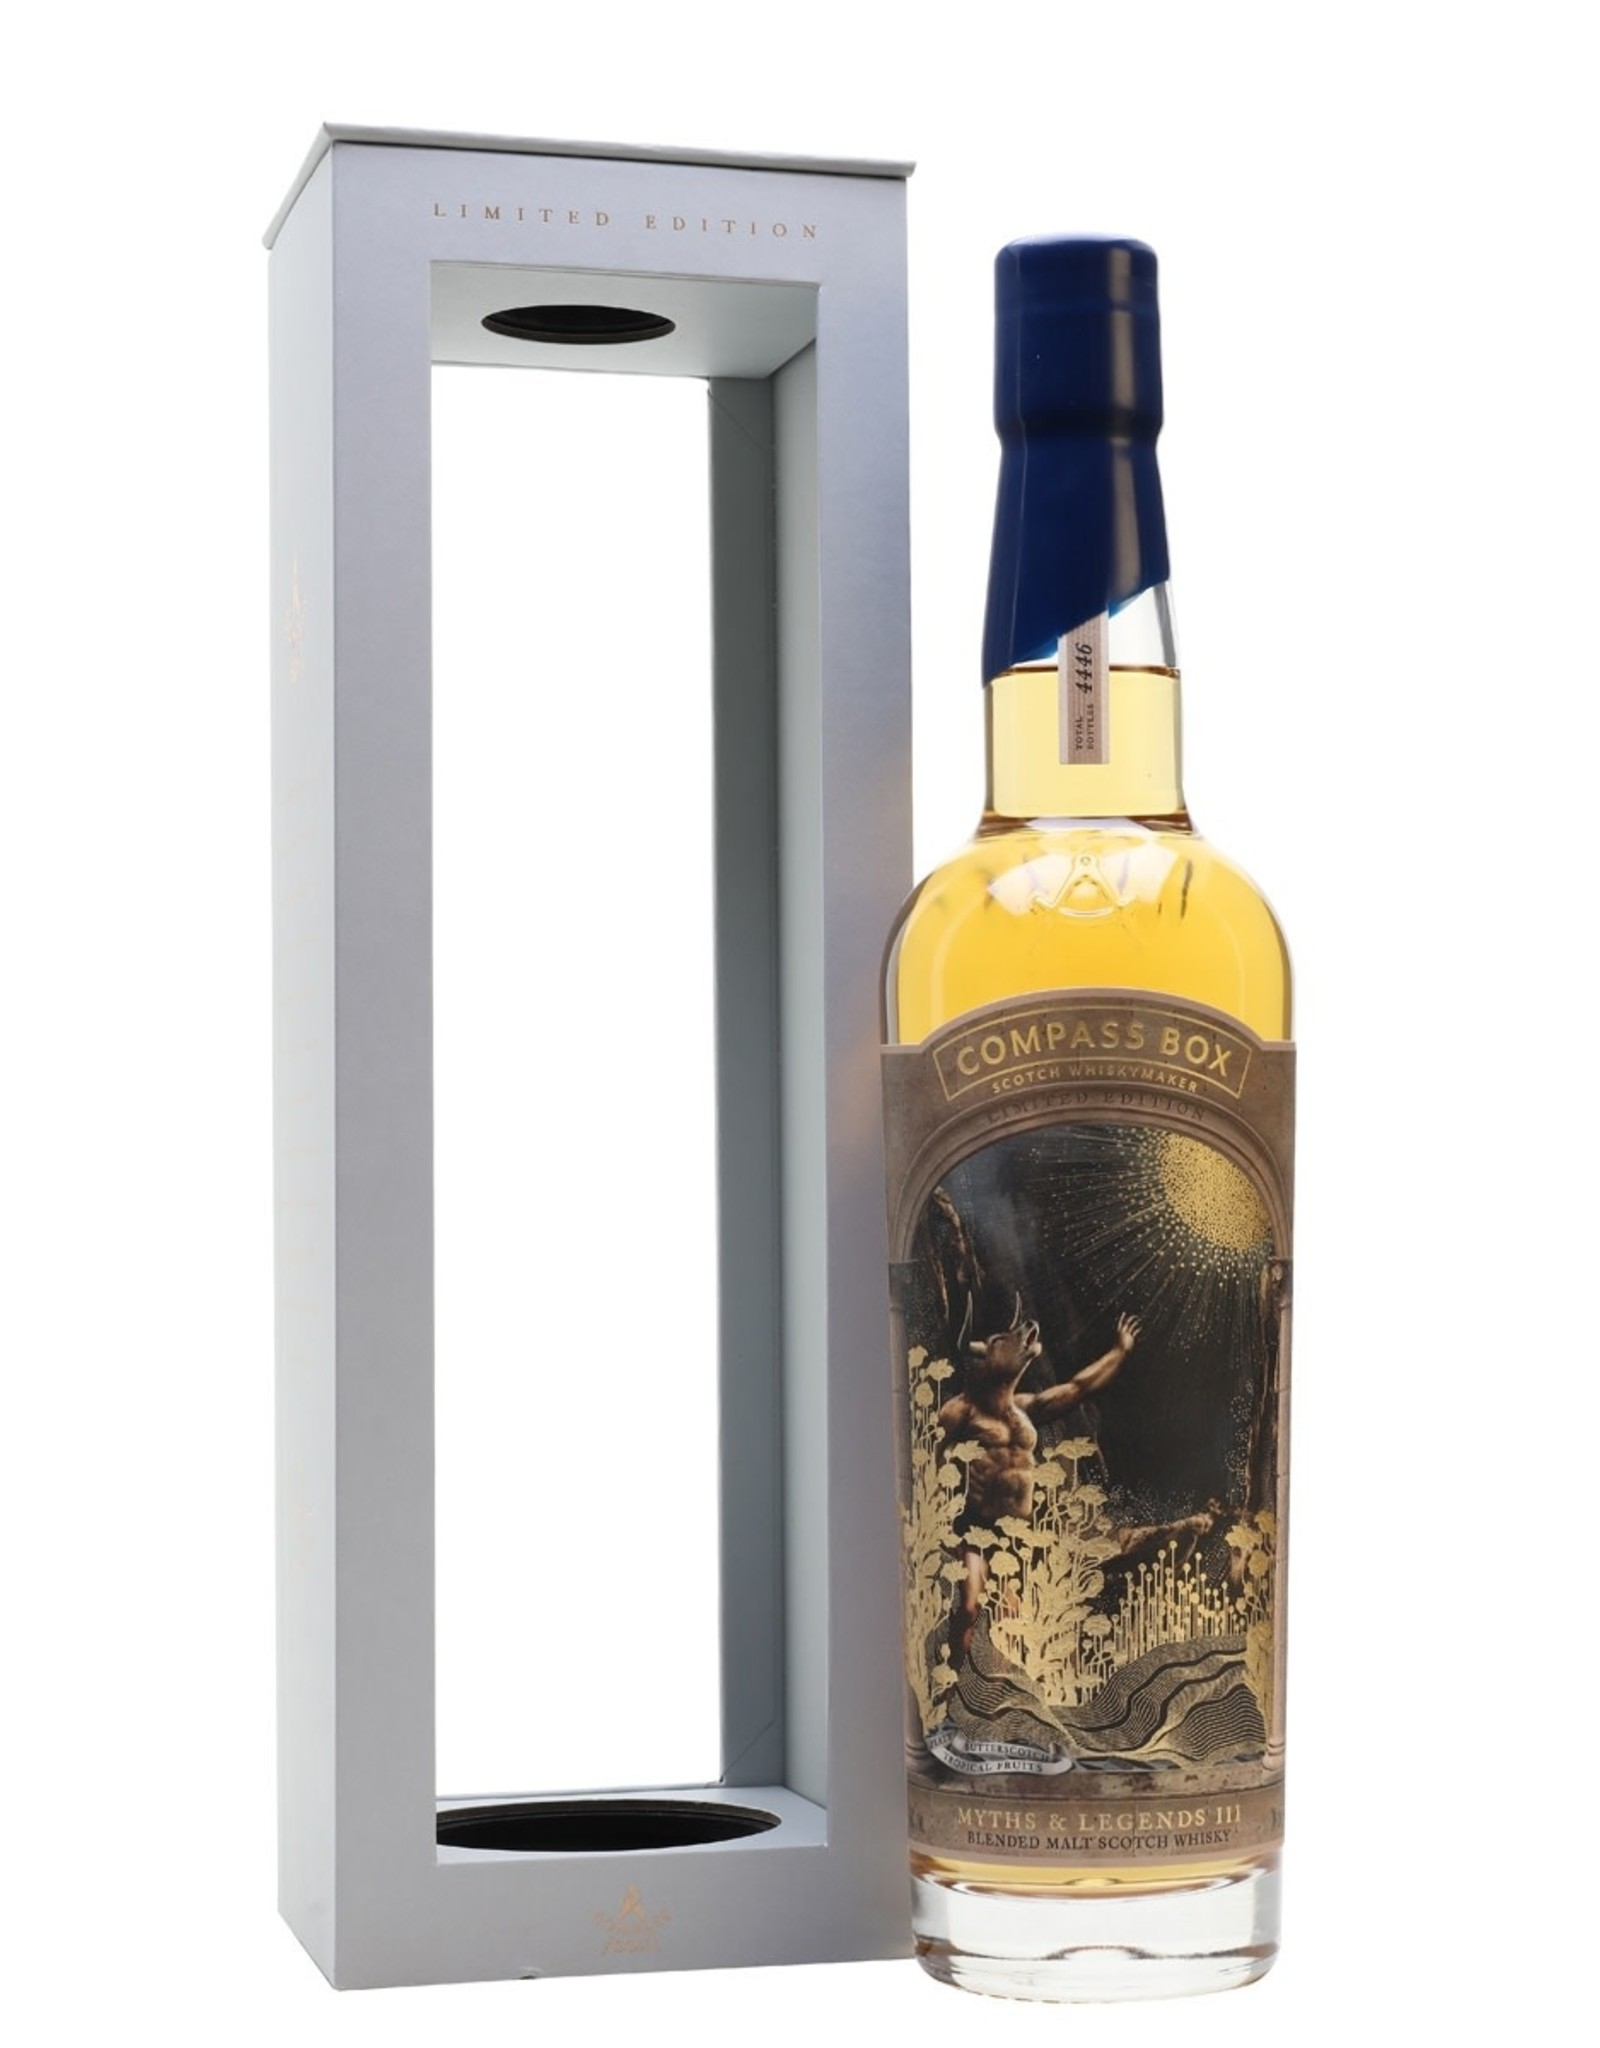 Compass Box Myth & Legends III